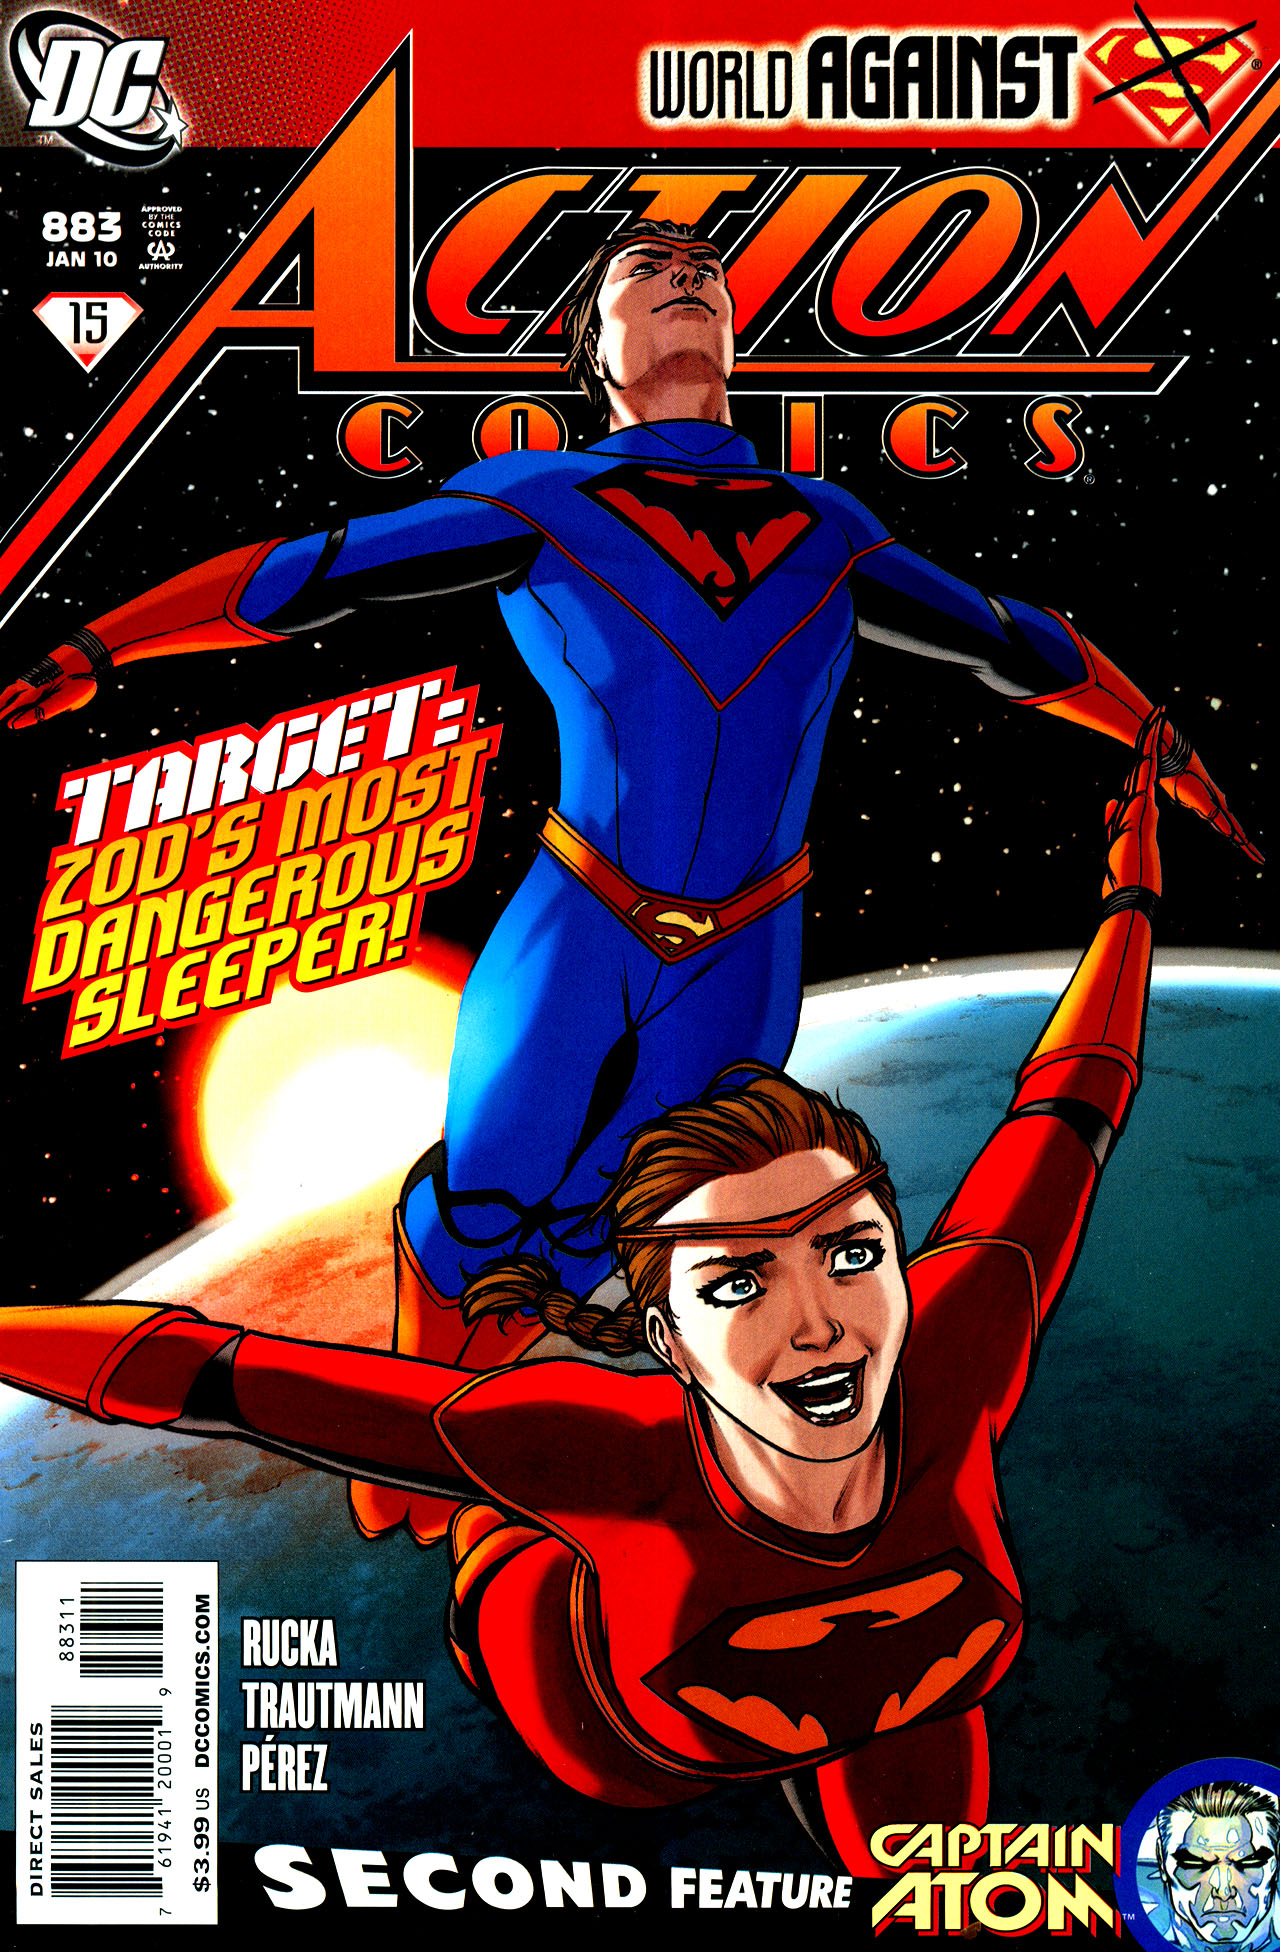 Read online Action Comics (1938) comic -  Issue #883 - 1